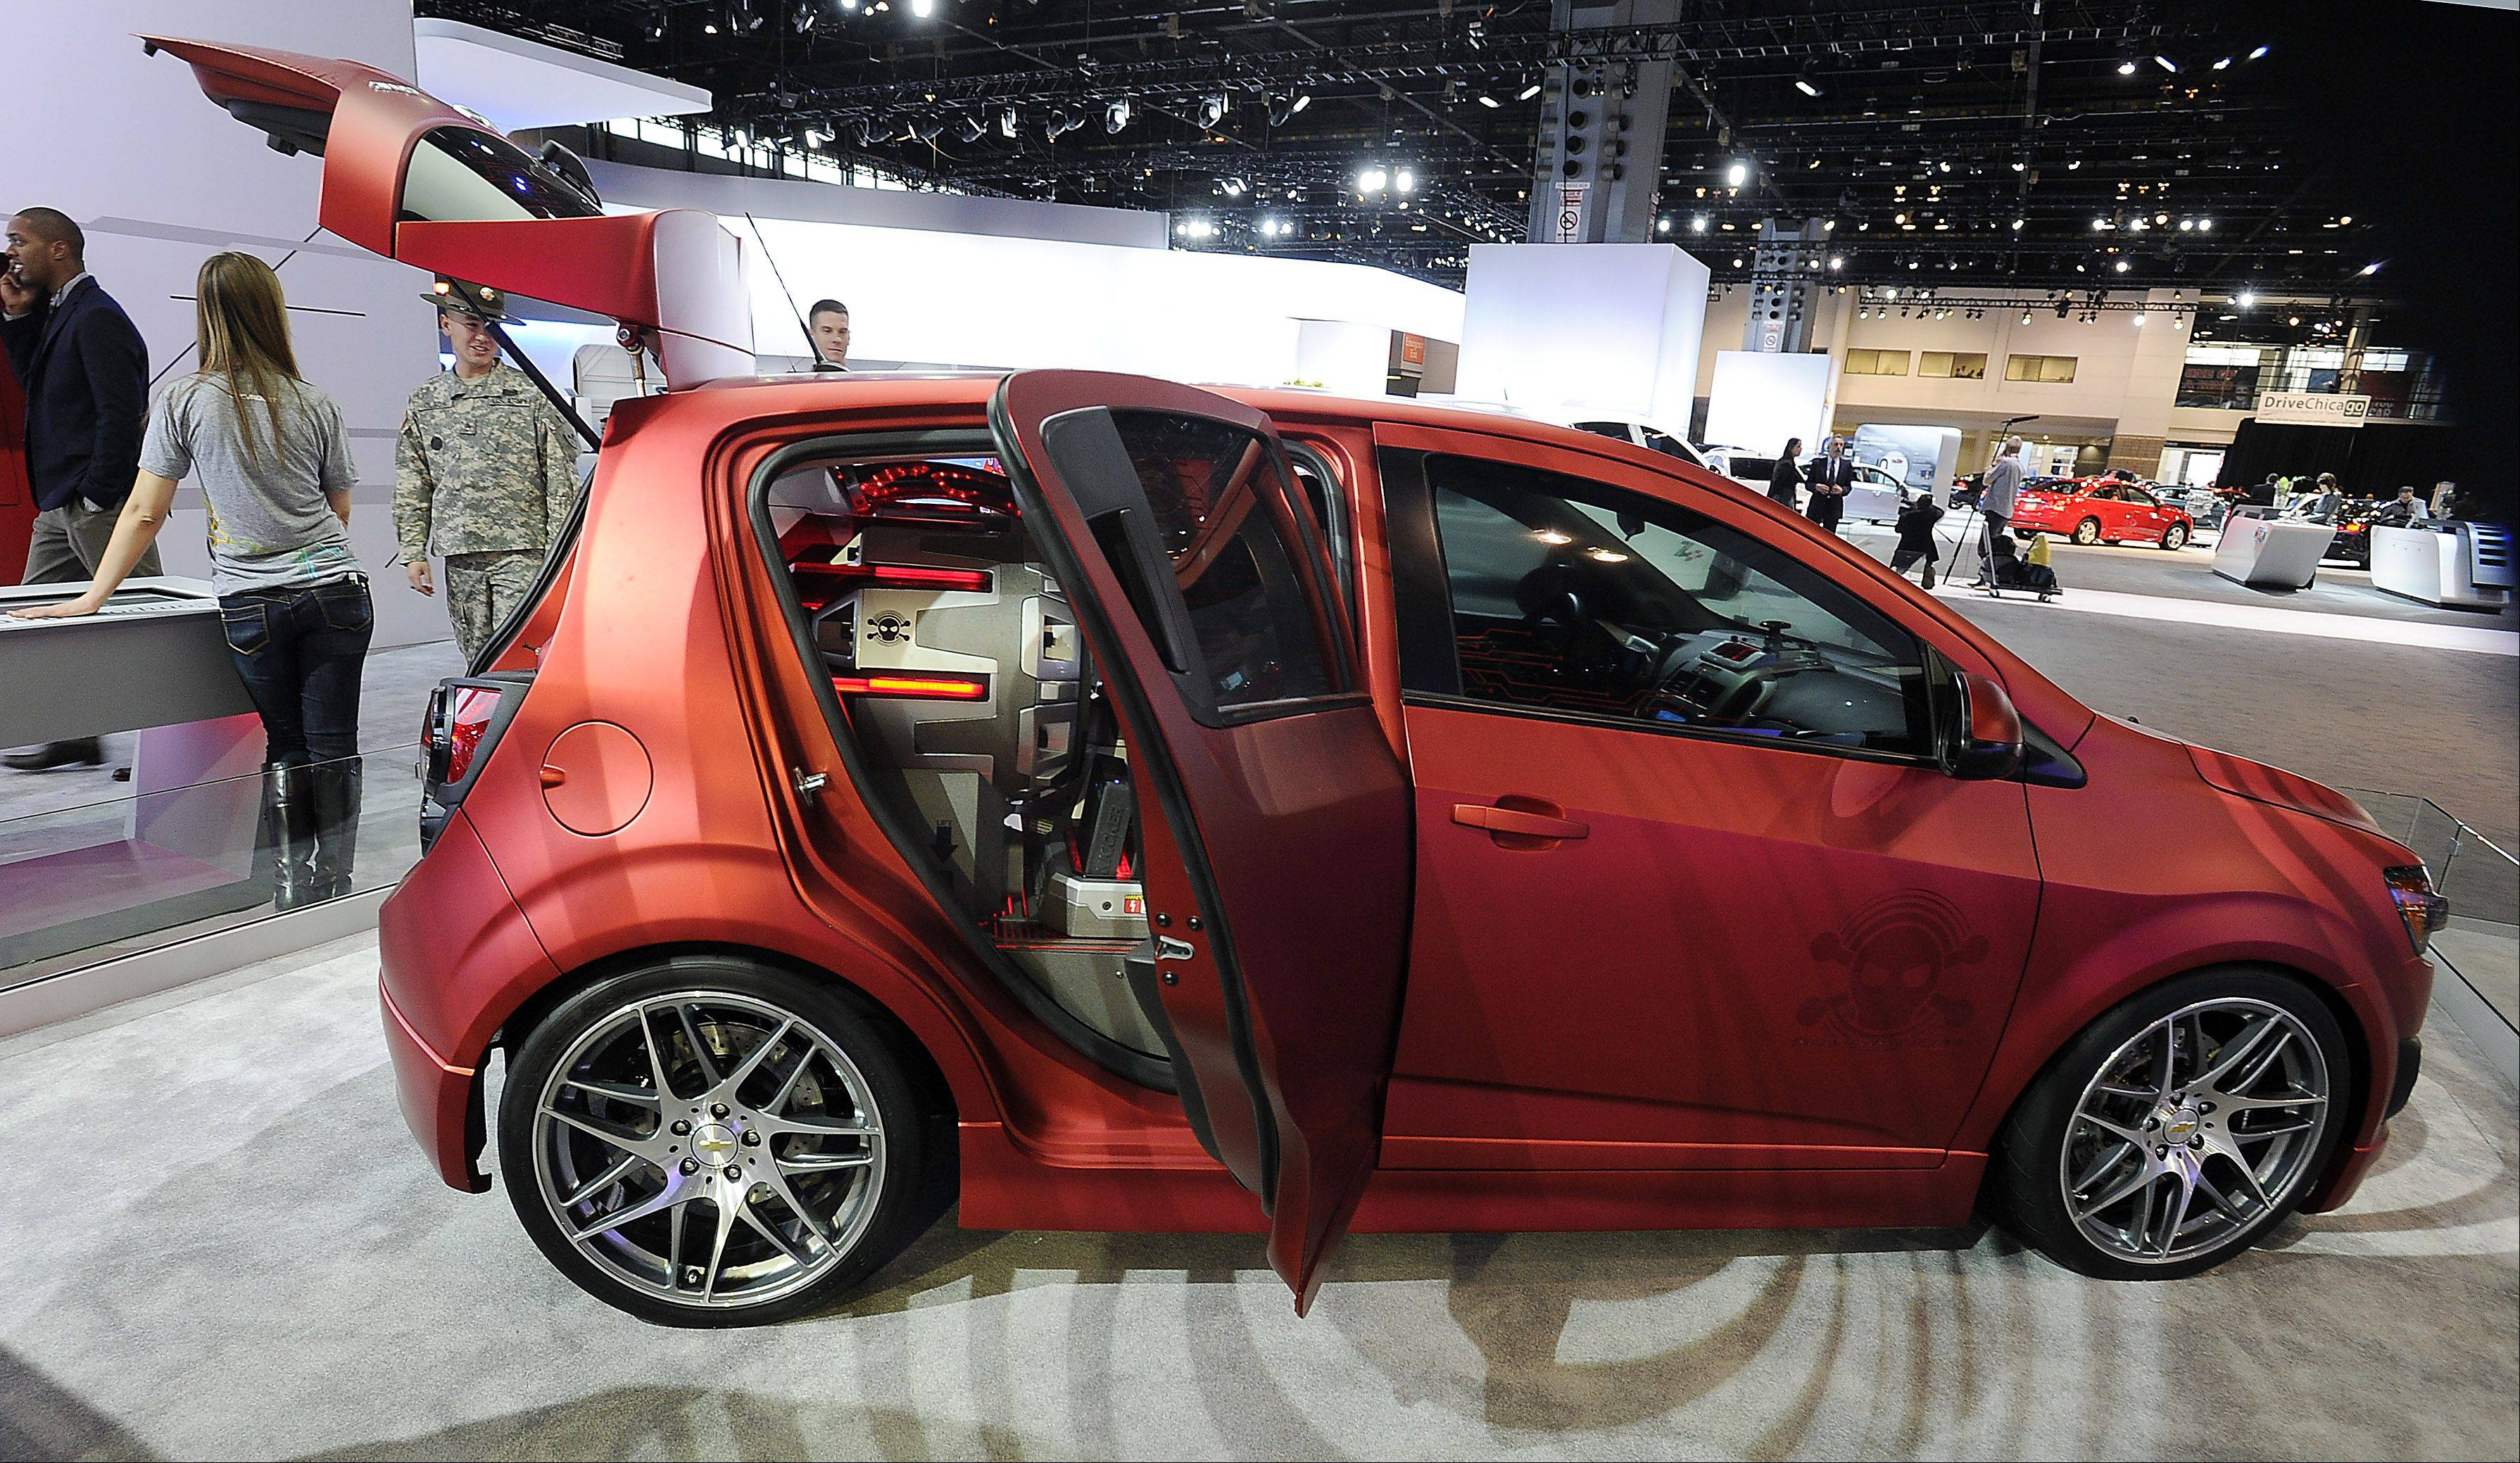 The Chevy Sonic Boom concept is on display.